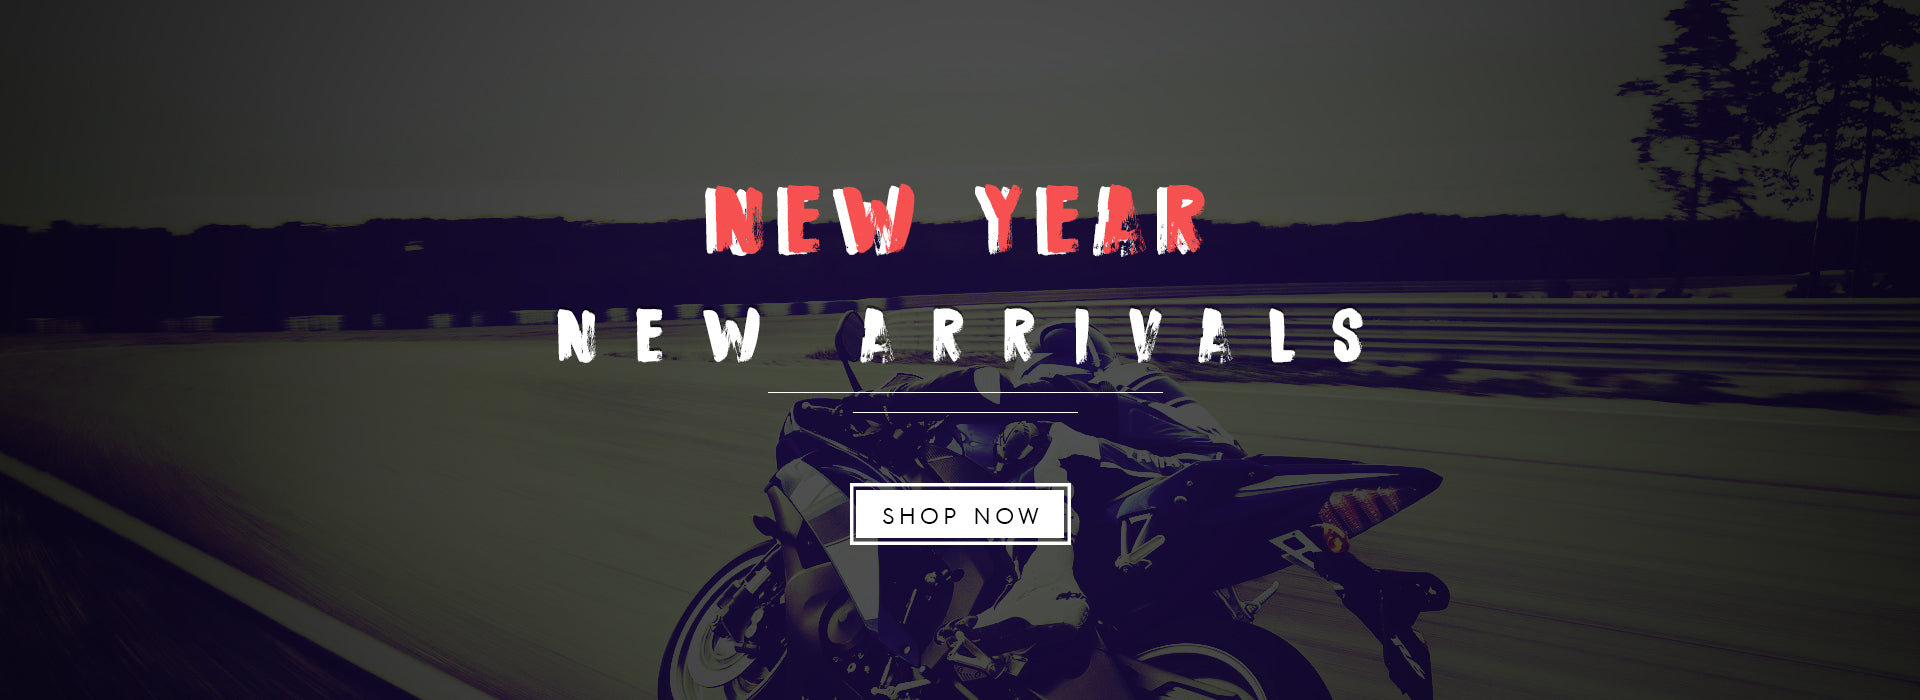 New Year New Gear Arrivals